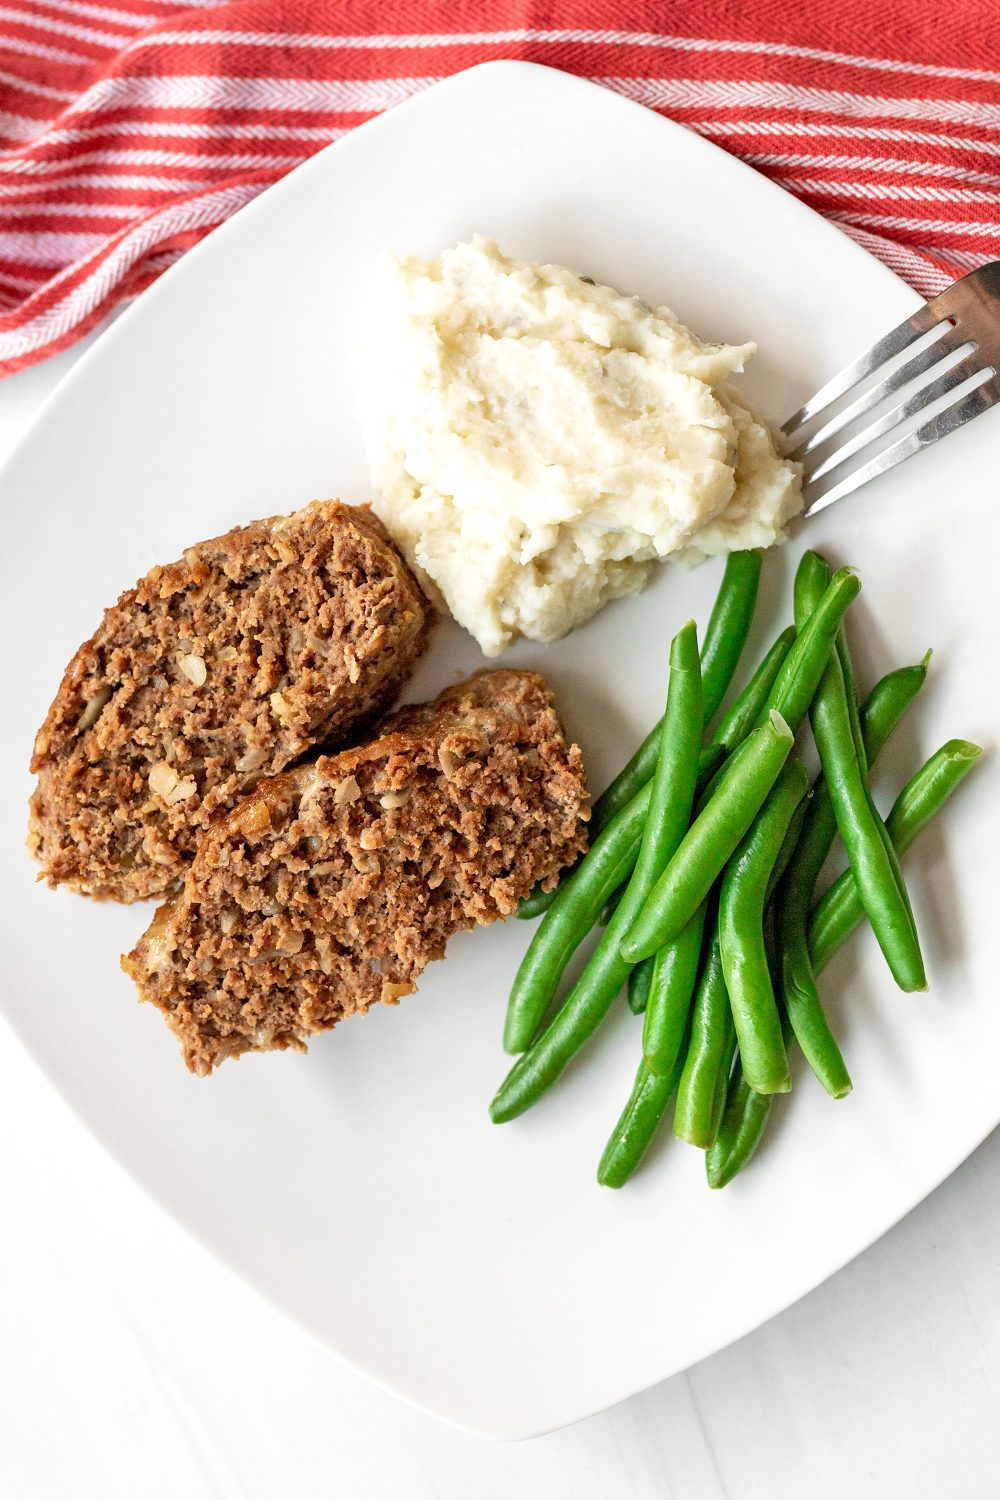 plate with meatloaf mashed potatoes and green beans